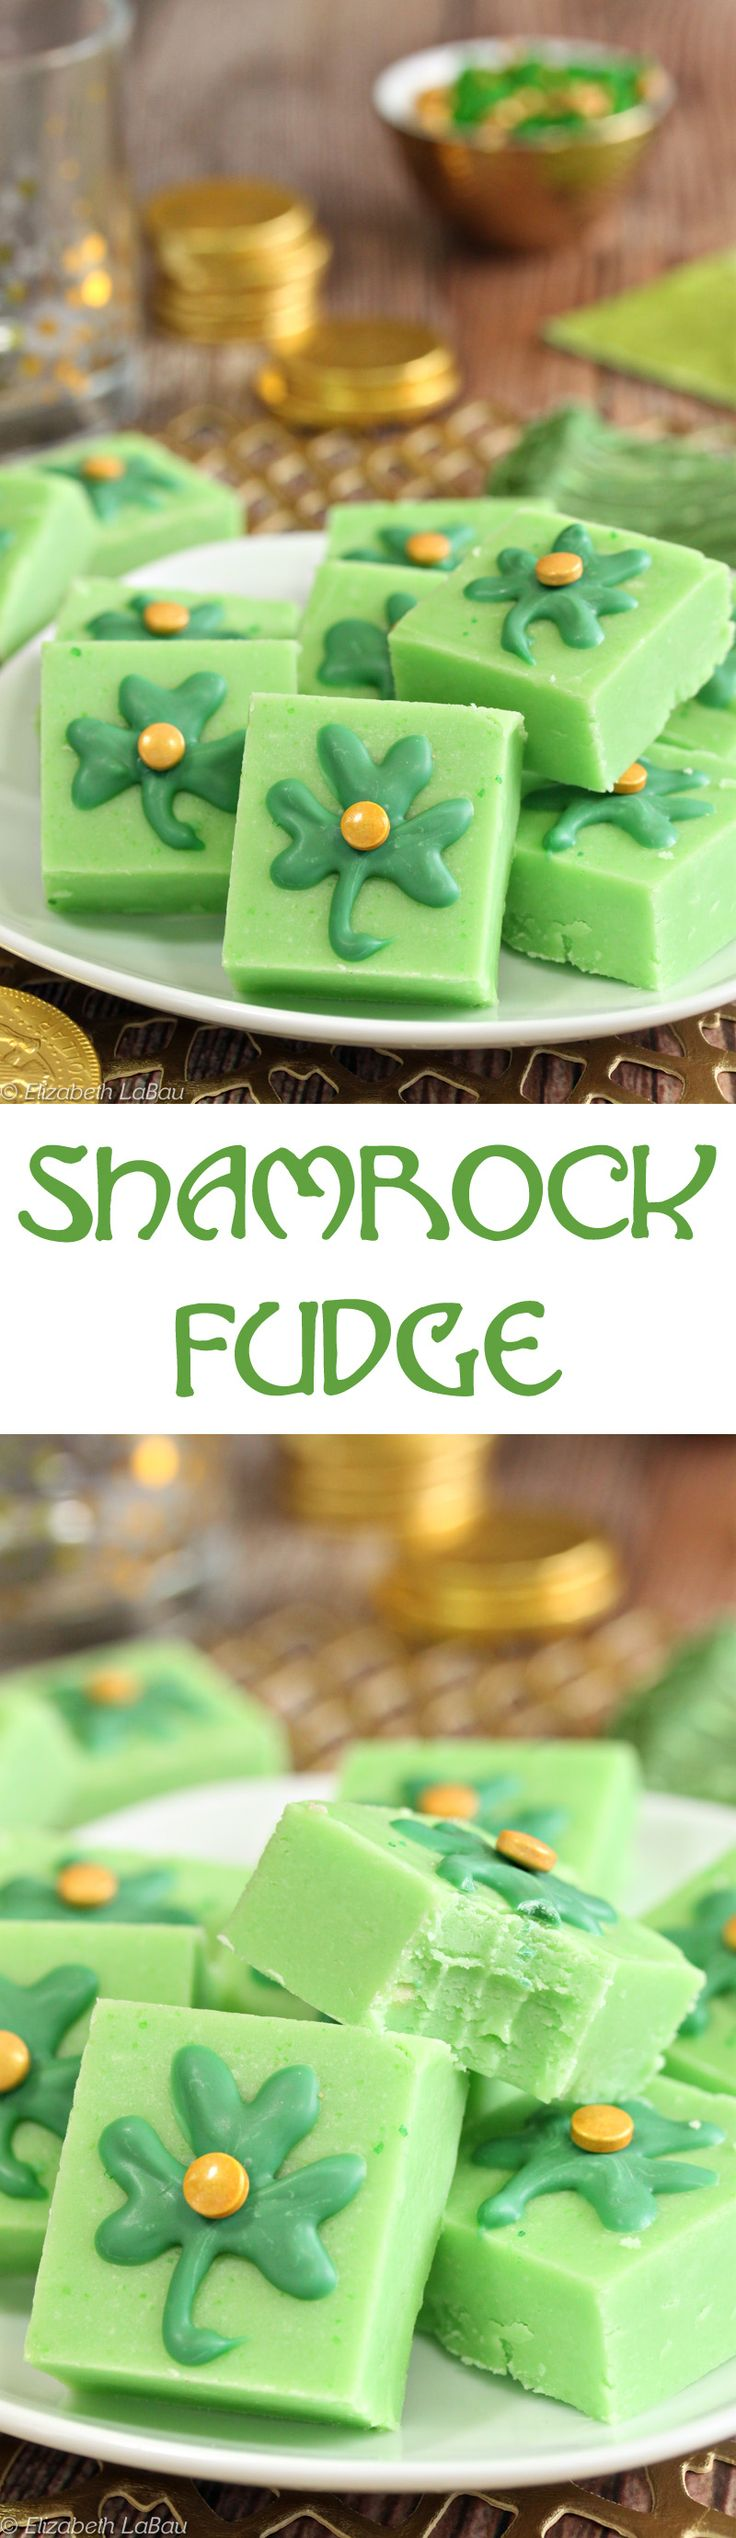 Shamrock Fudge - minty green fudge for St. Patrick's Day!   From candy.about.com